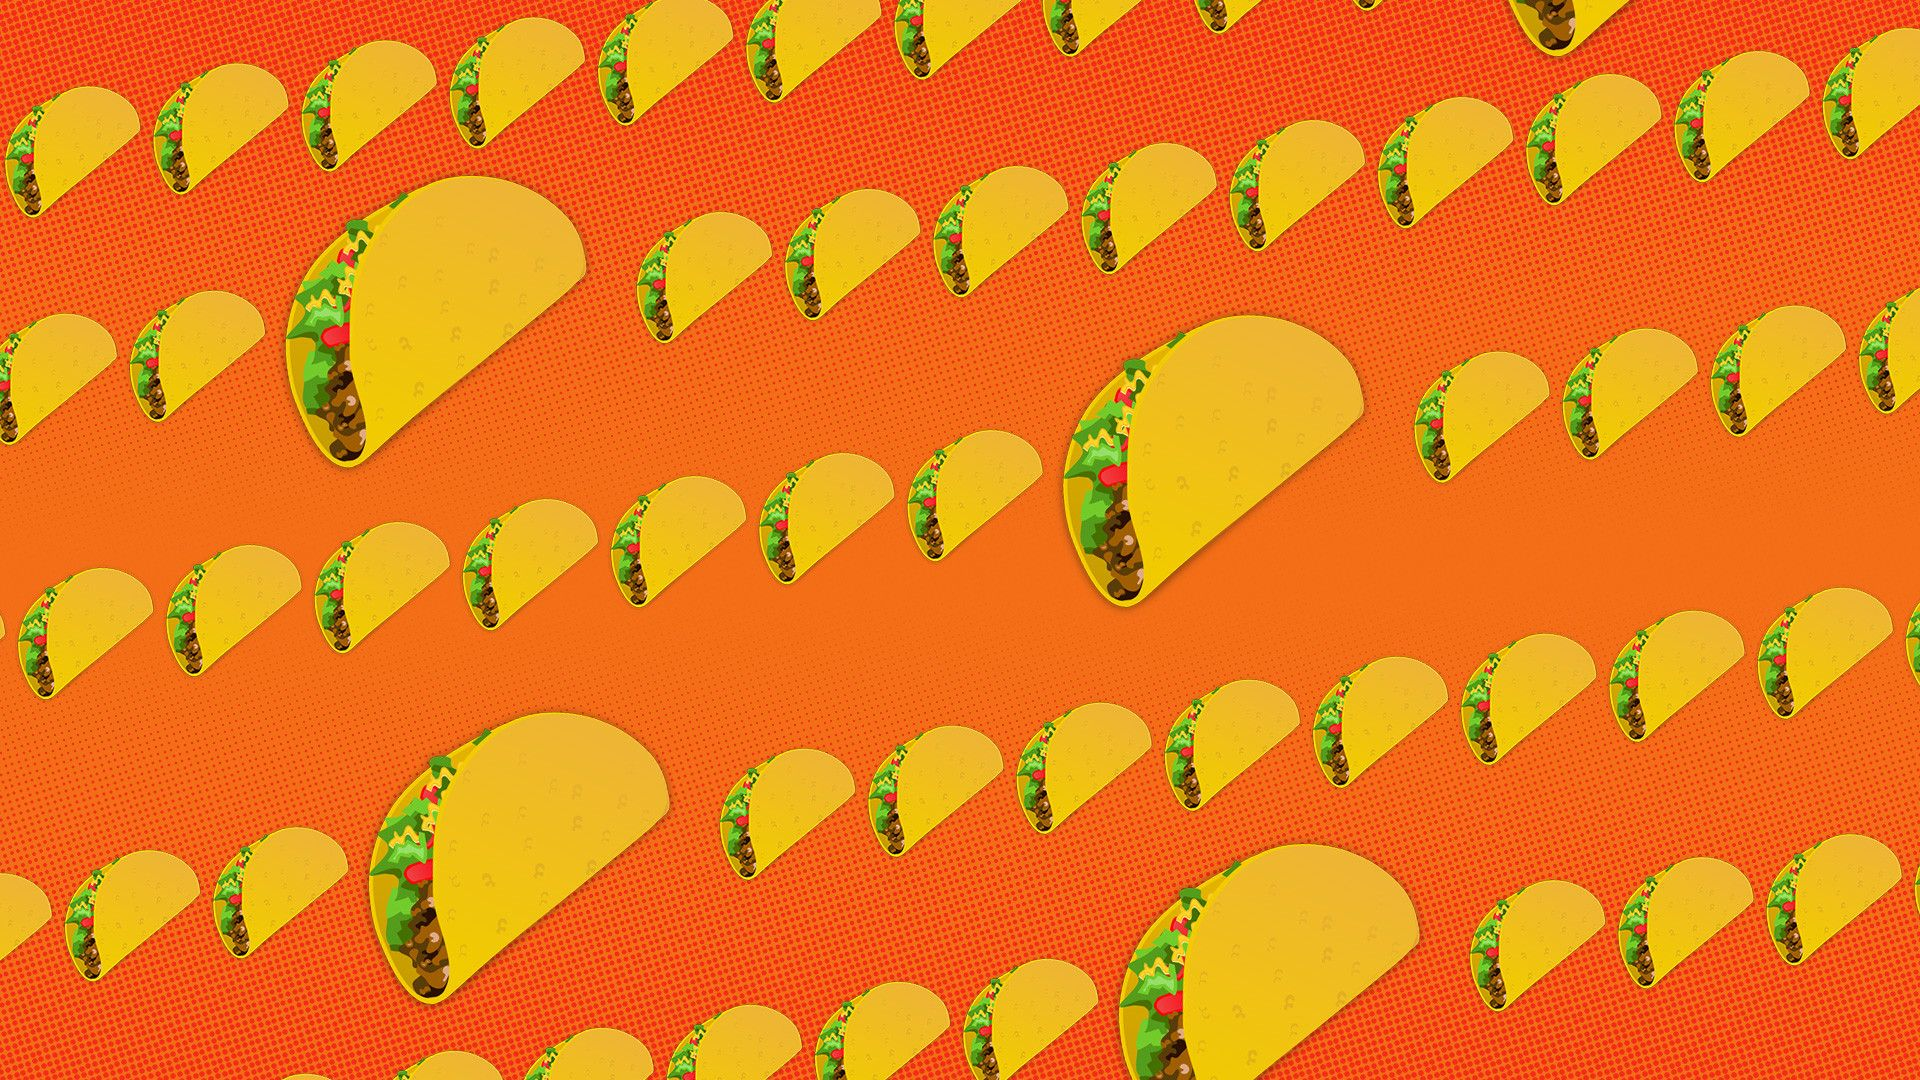 taco images